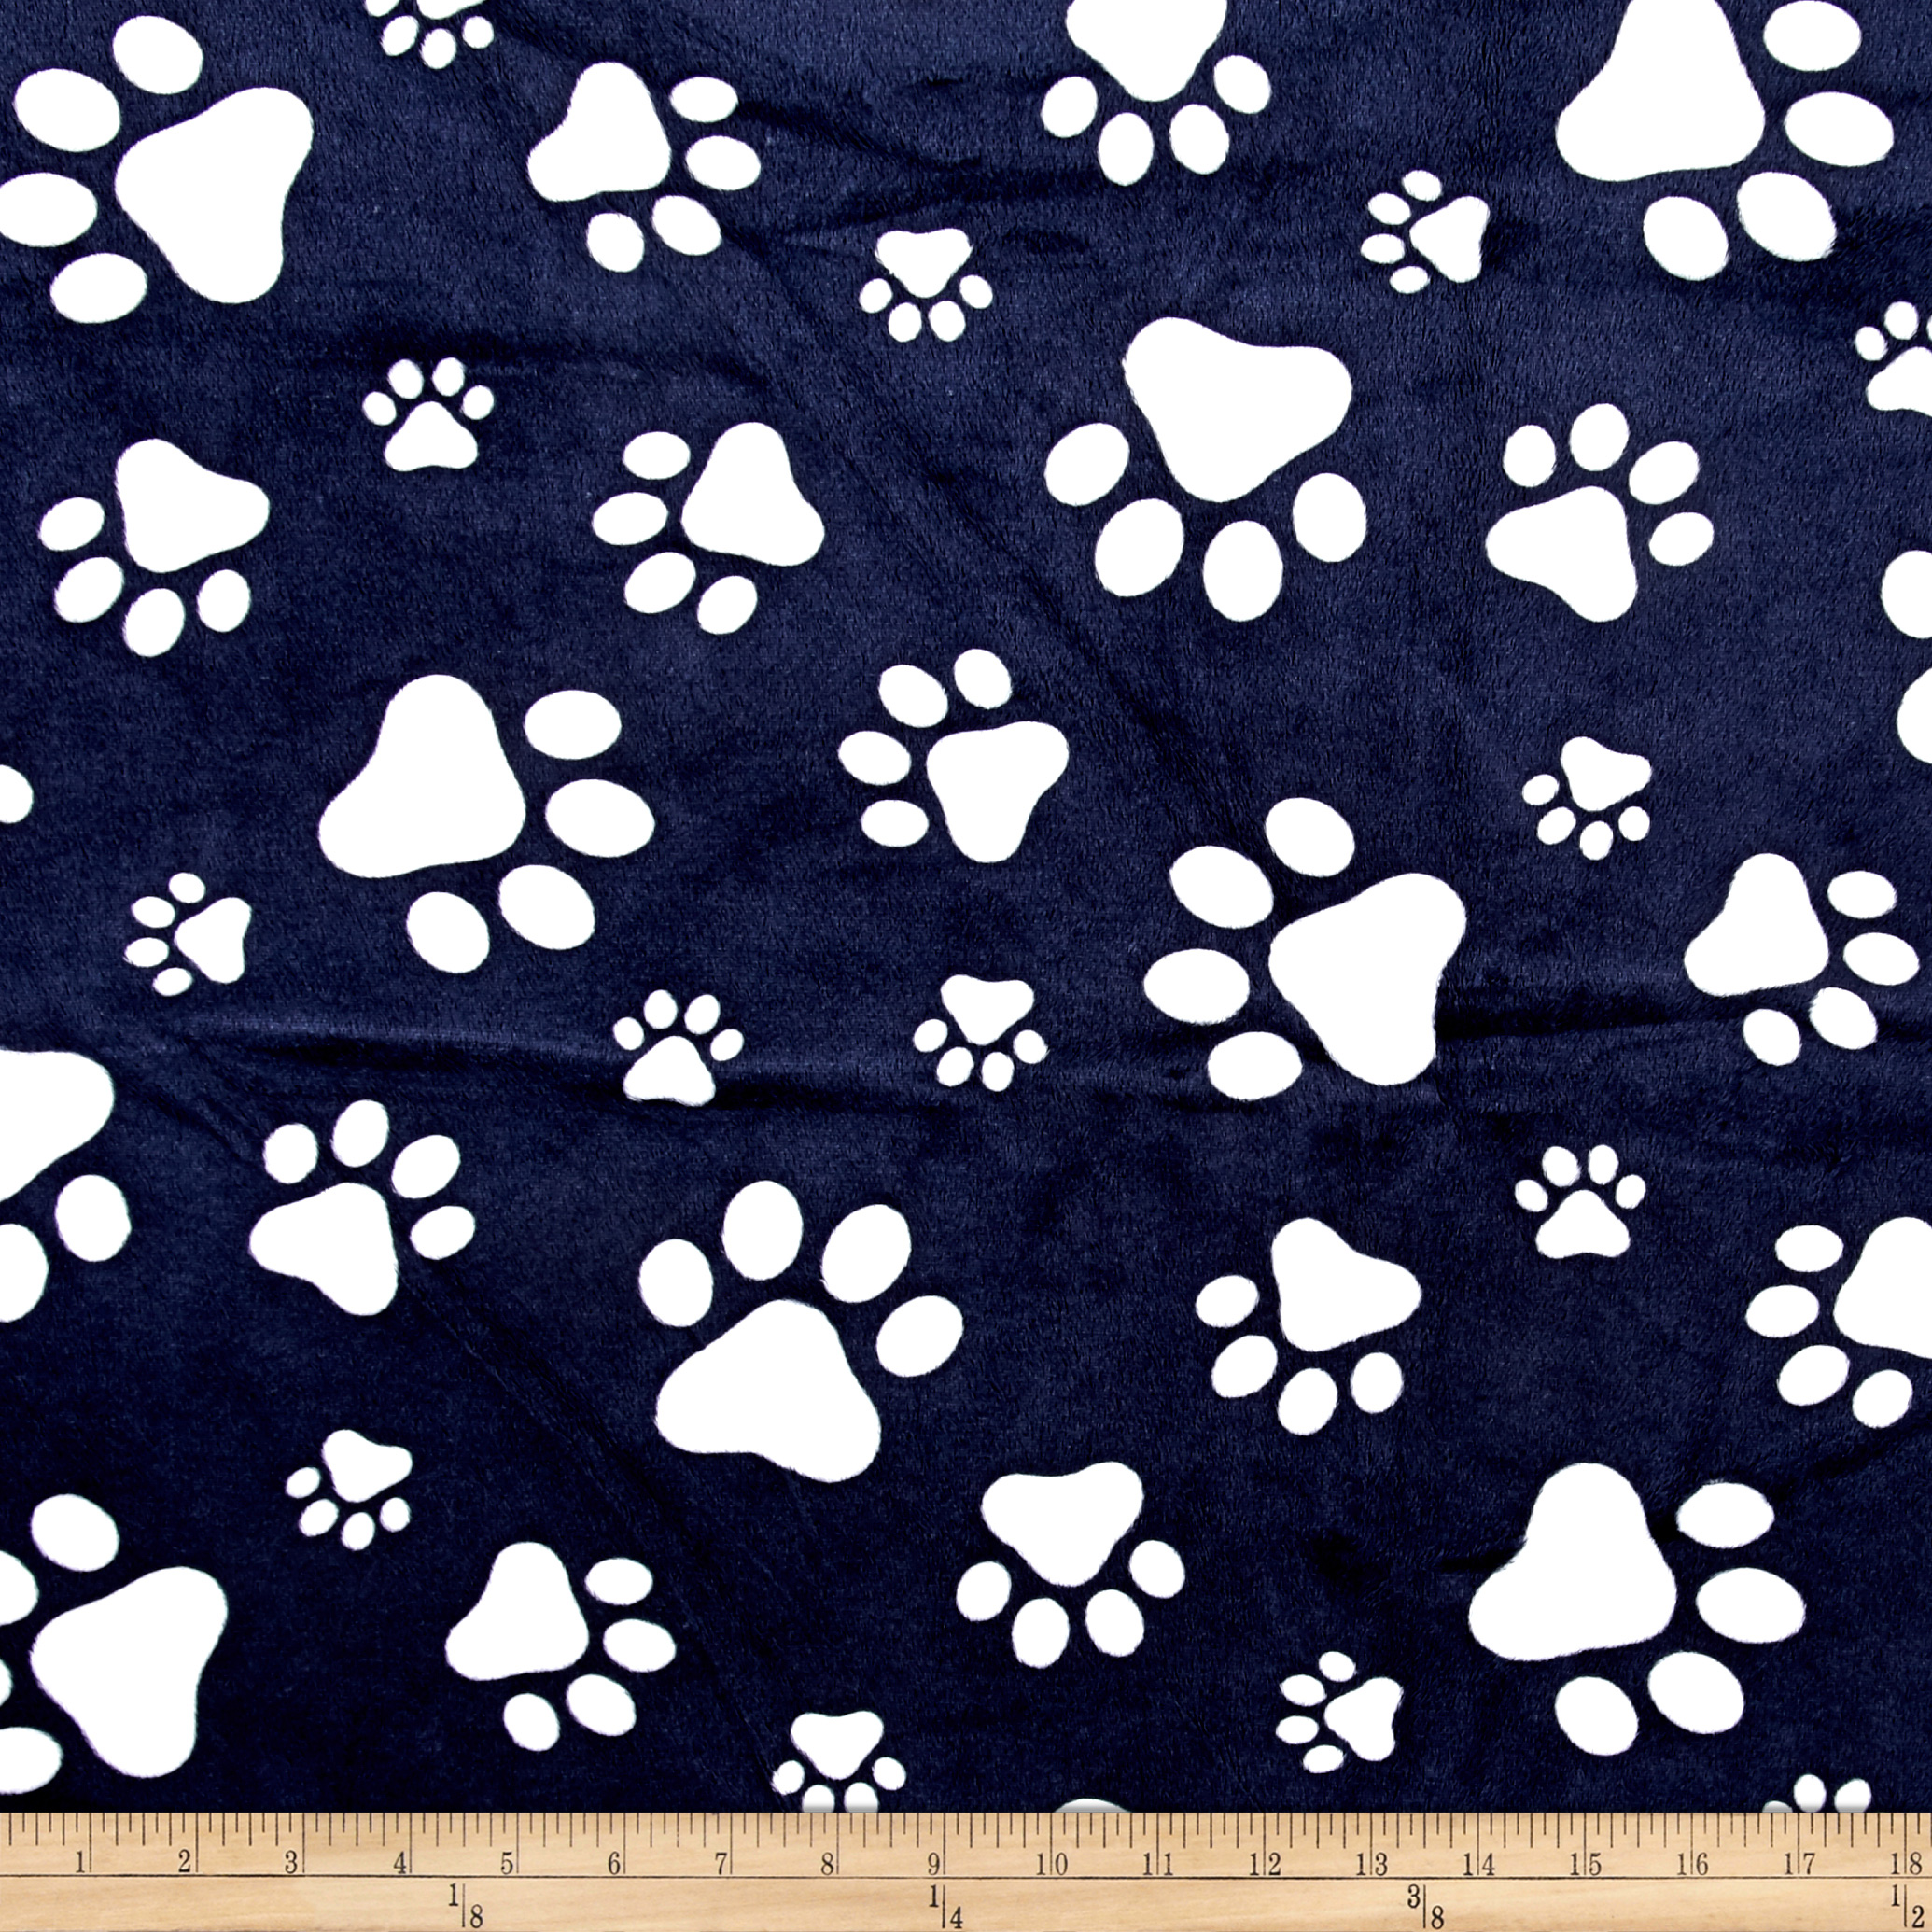 Shannon Minky Cuddle Prints Paws Navy/Snow Fabric